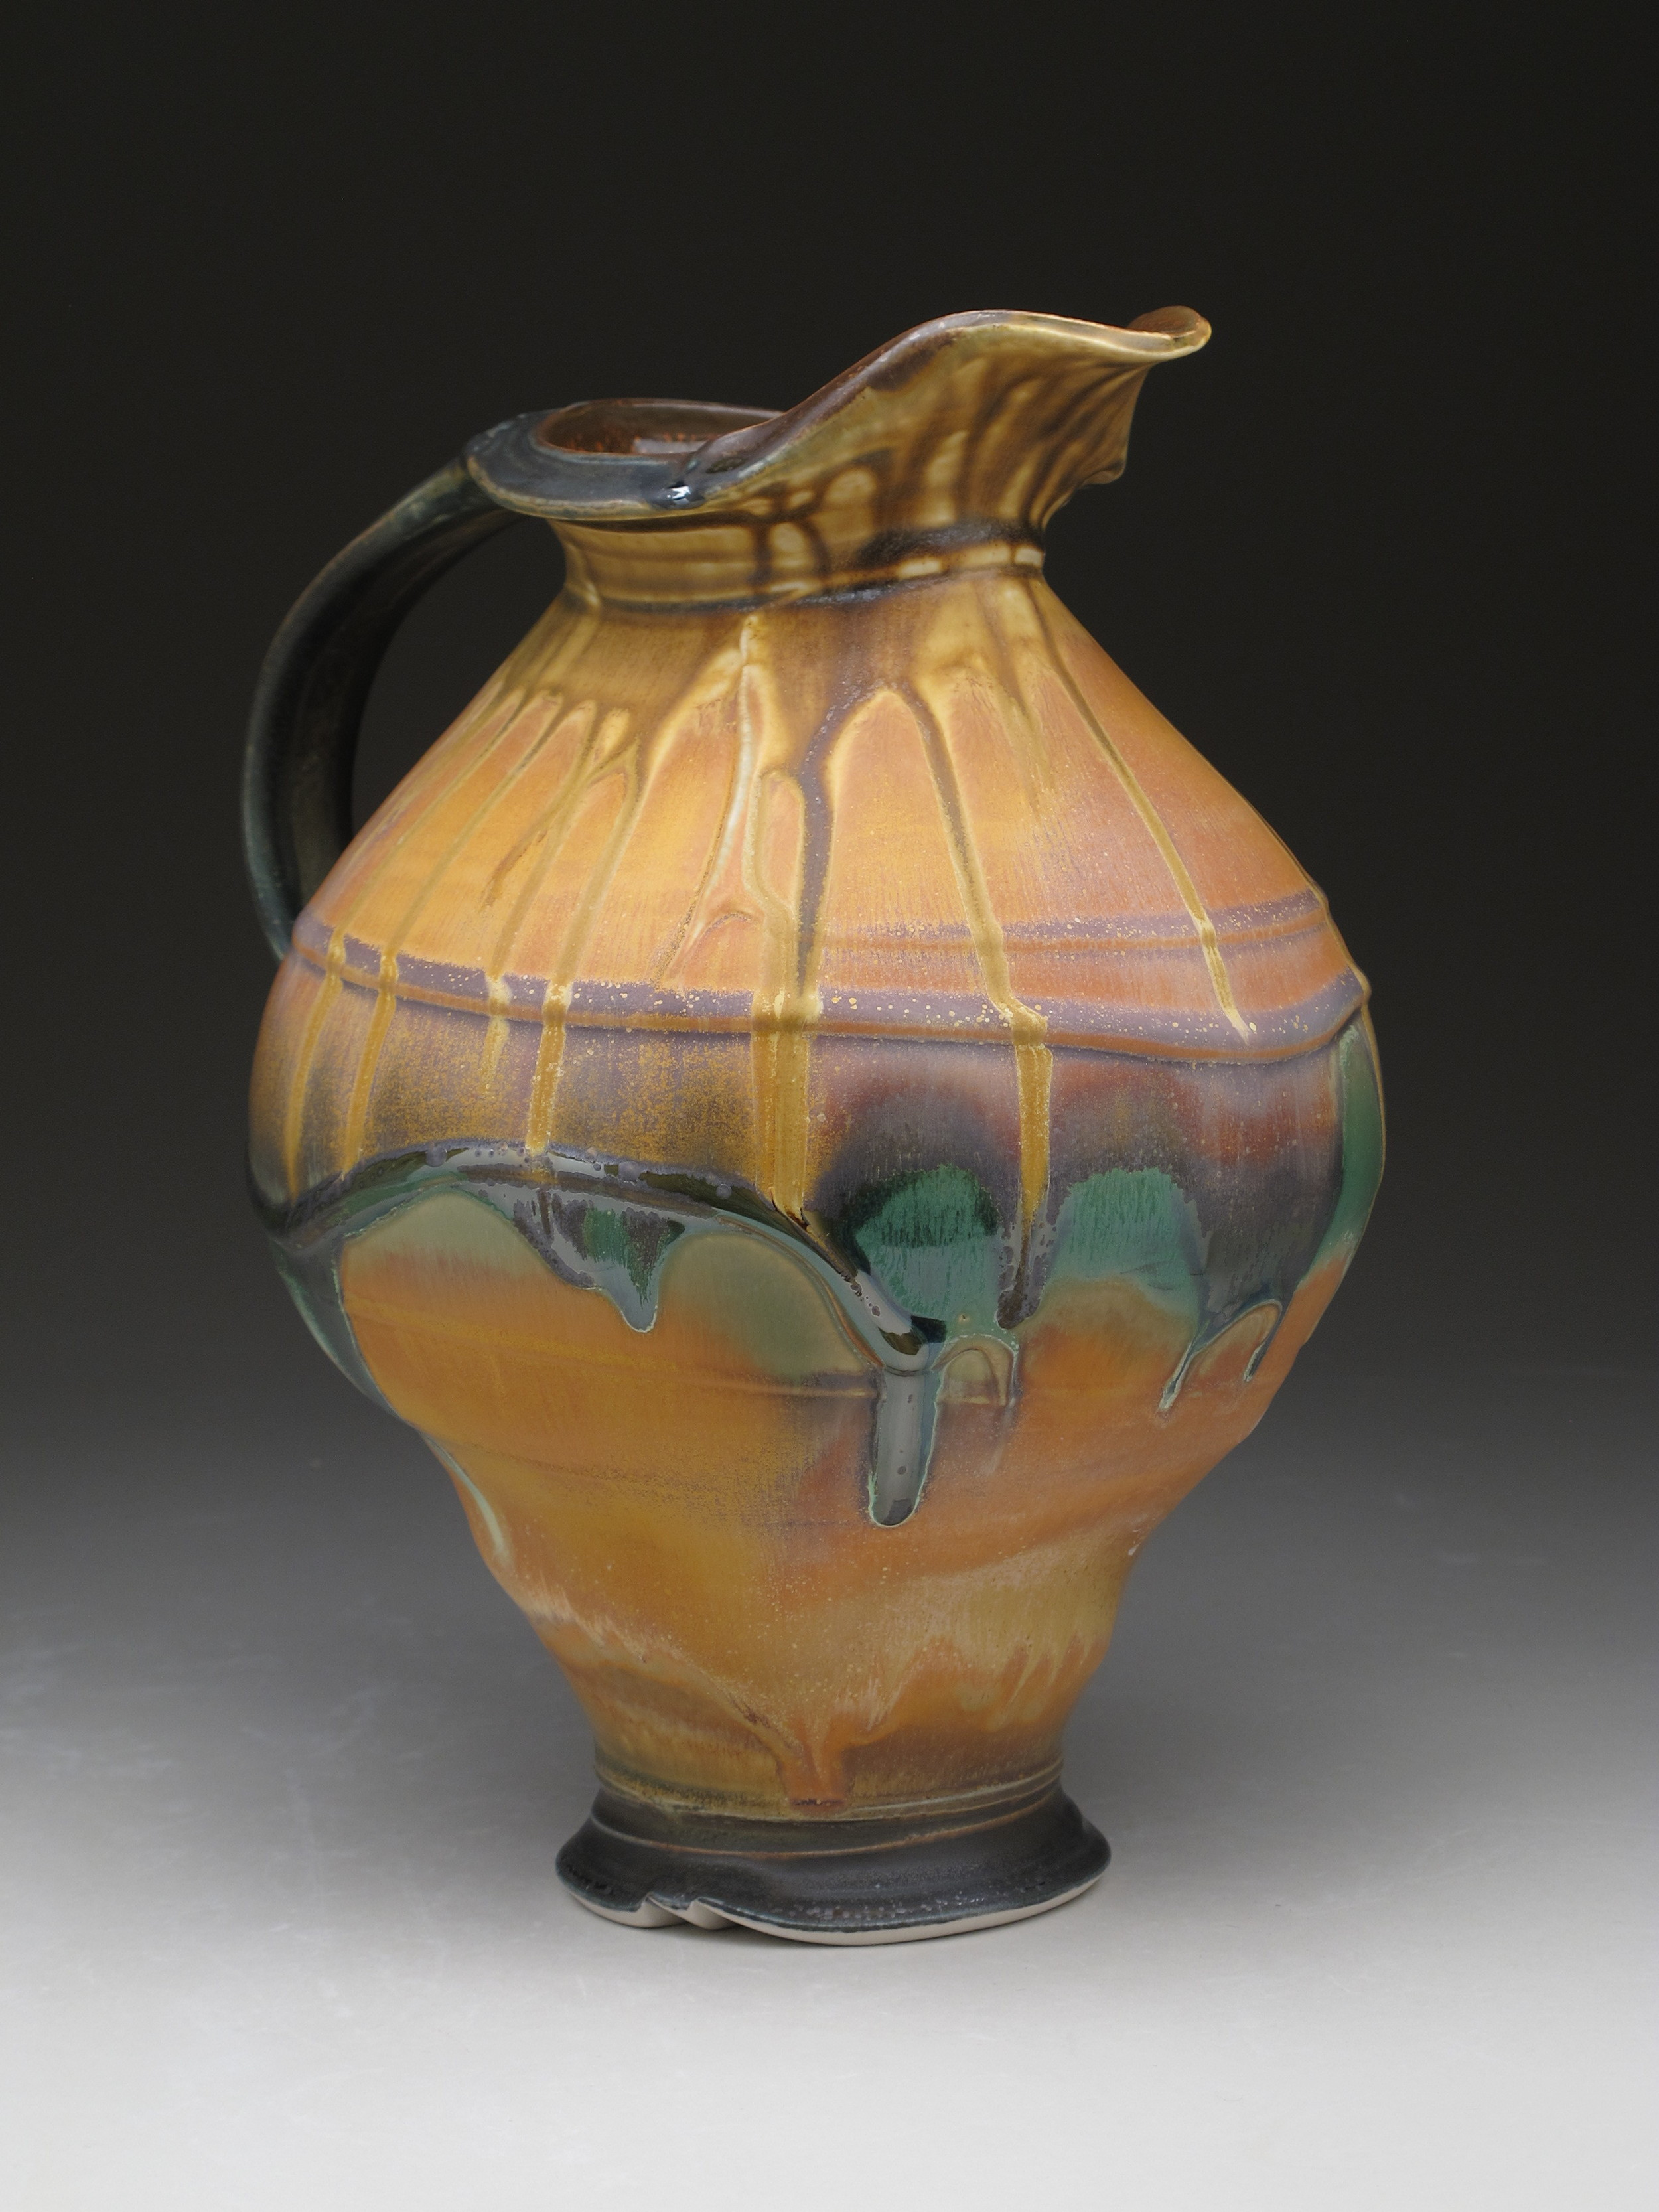 """Melon Pitcher, thrown and altered, ribbed slip design, multiple glaze application, ^8 electric fired, 12"""" x 9"""" x 8"""", 2015"""